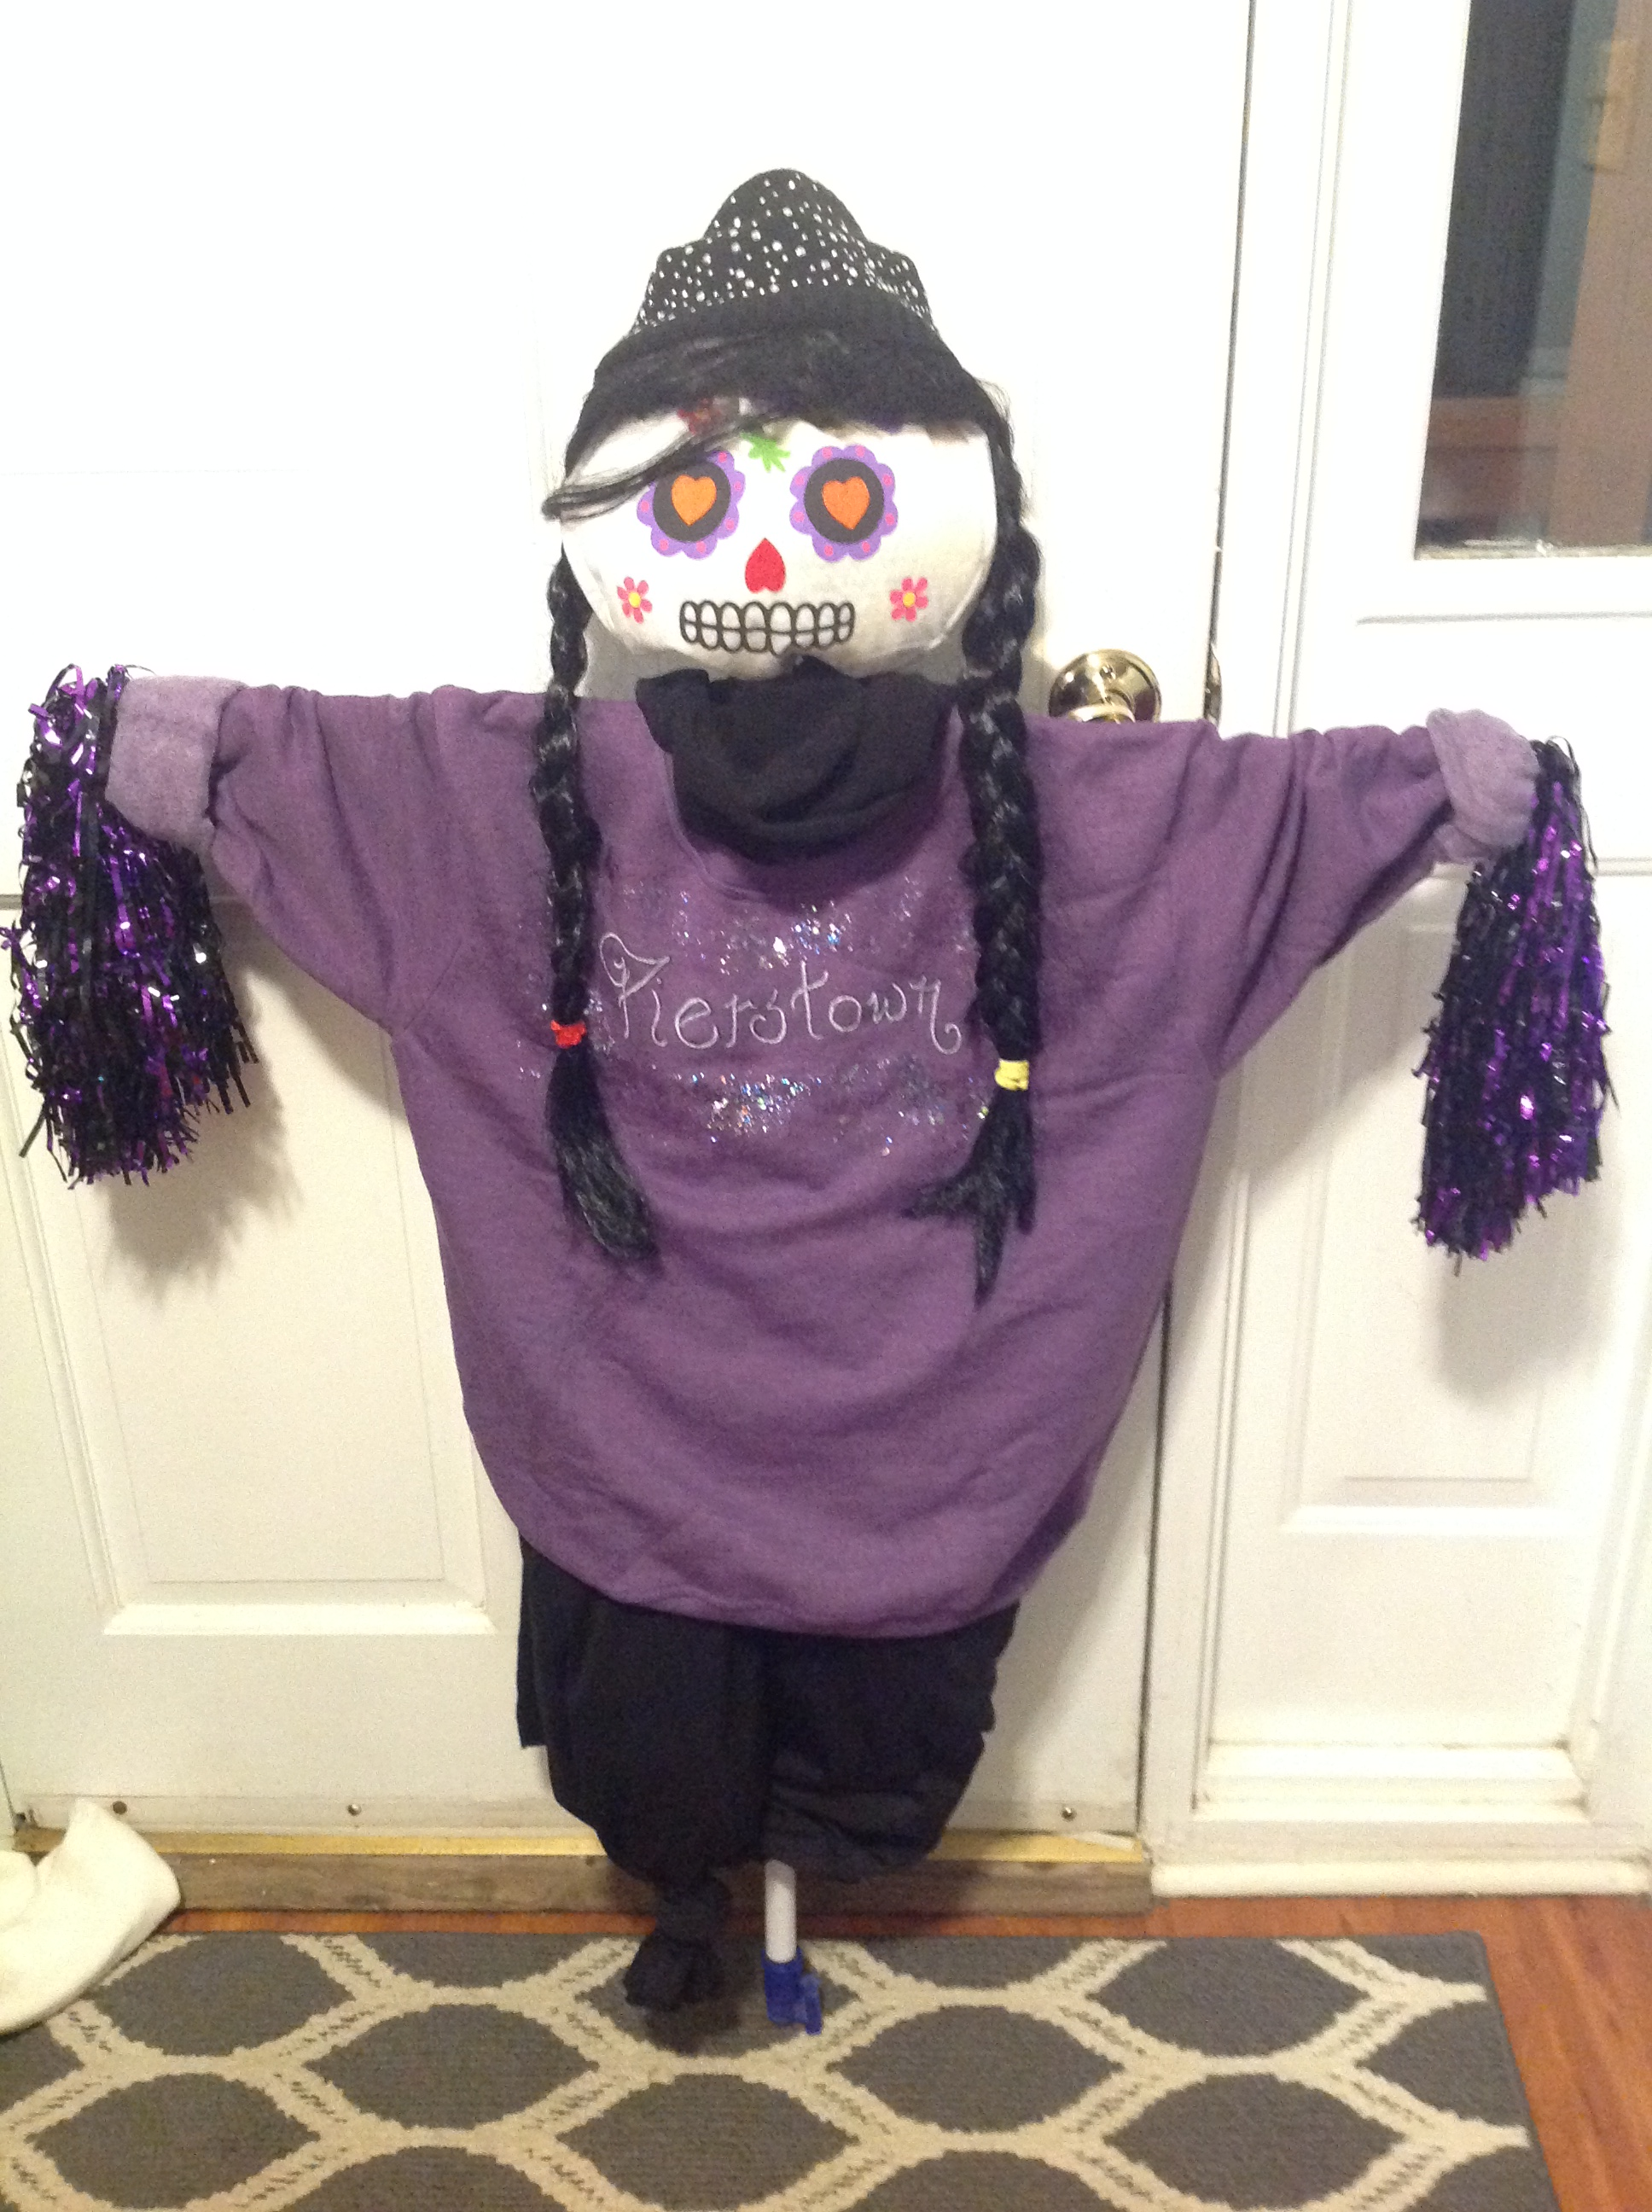 Pierstown - 2nd Annual Scarecrow Contest